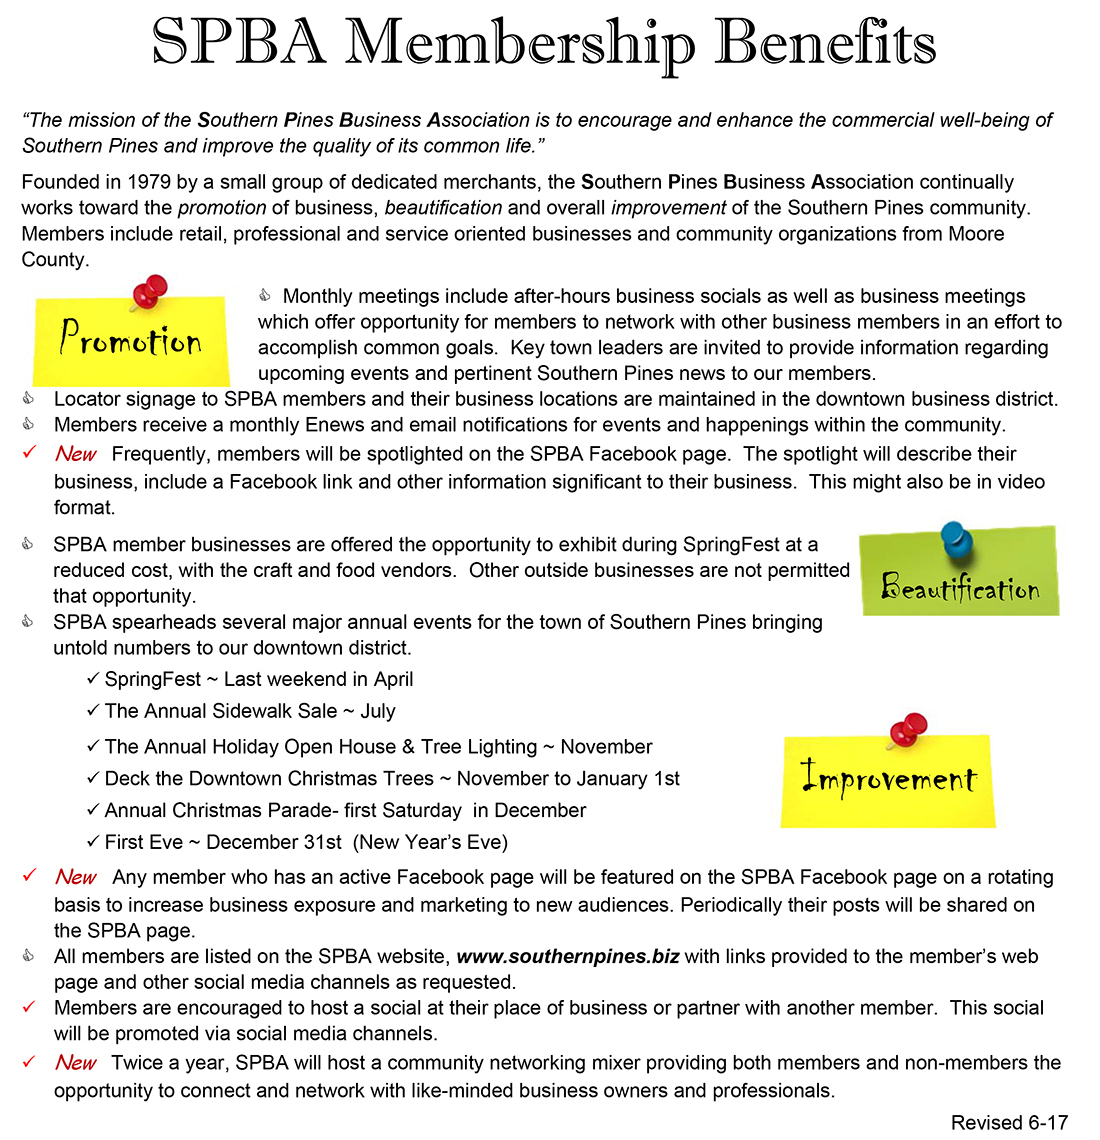 spba membershipbenefits june2017revised